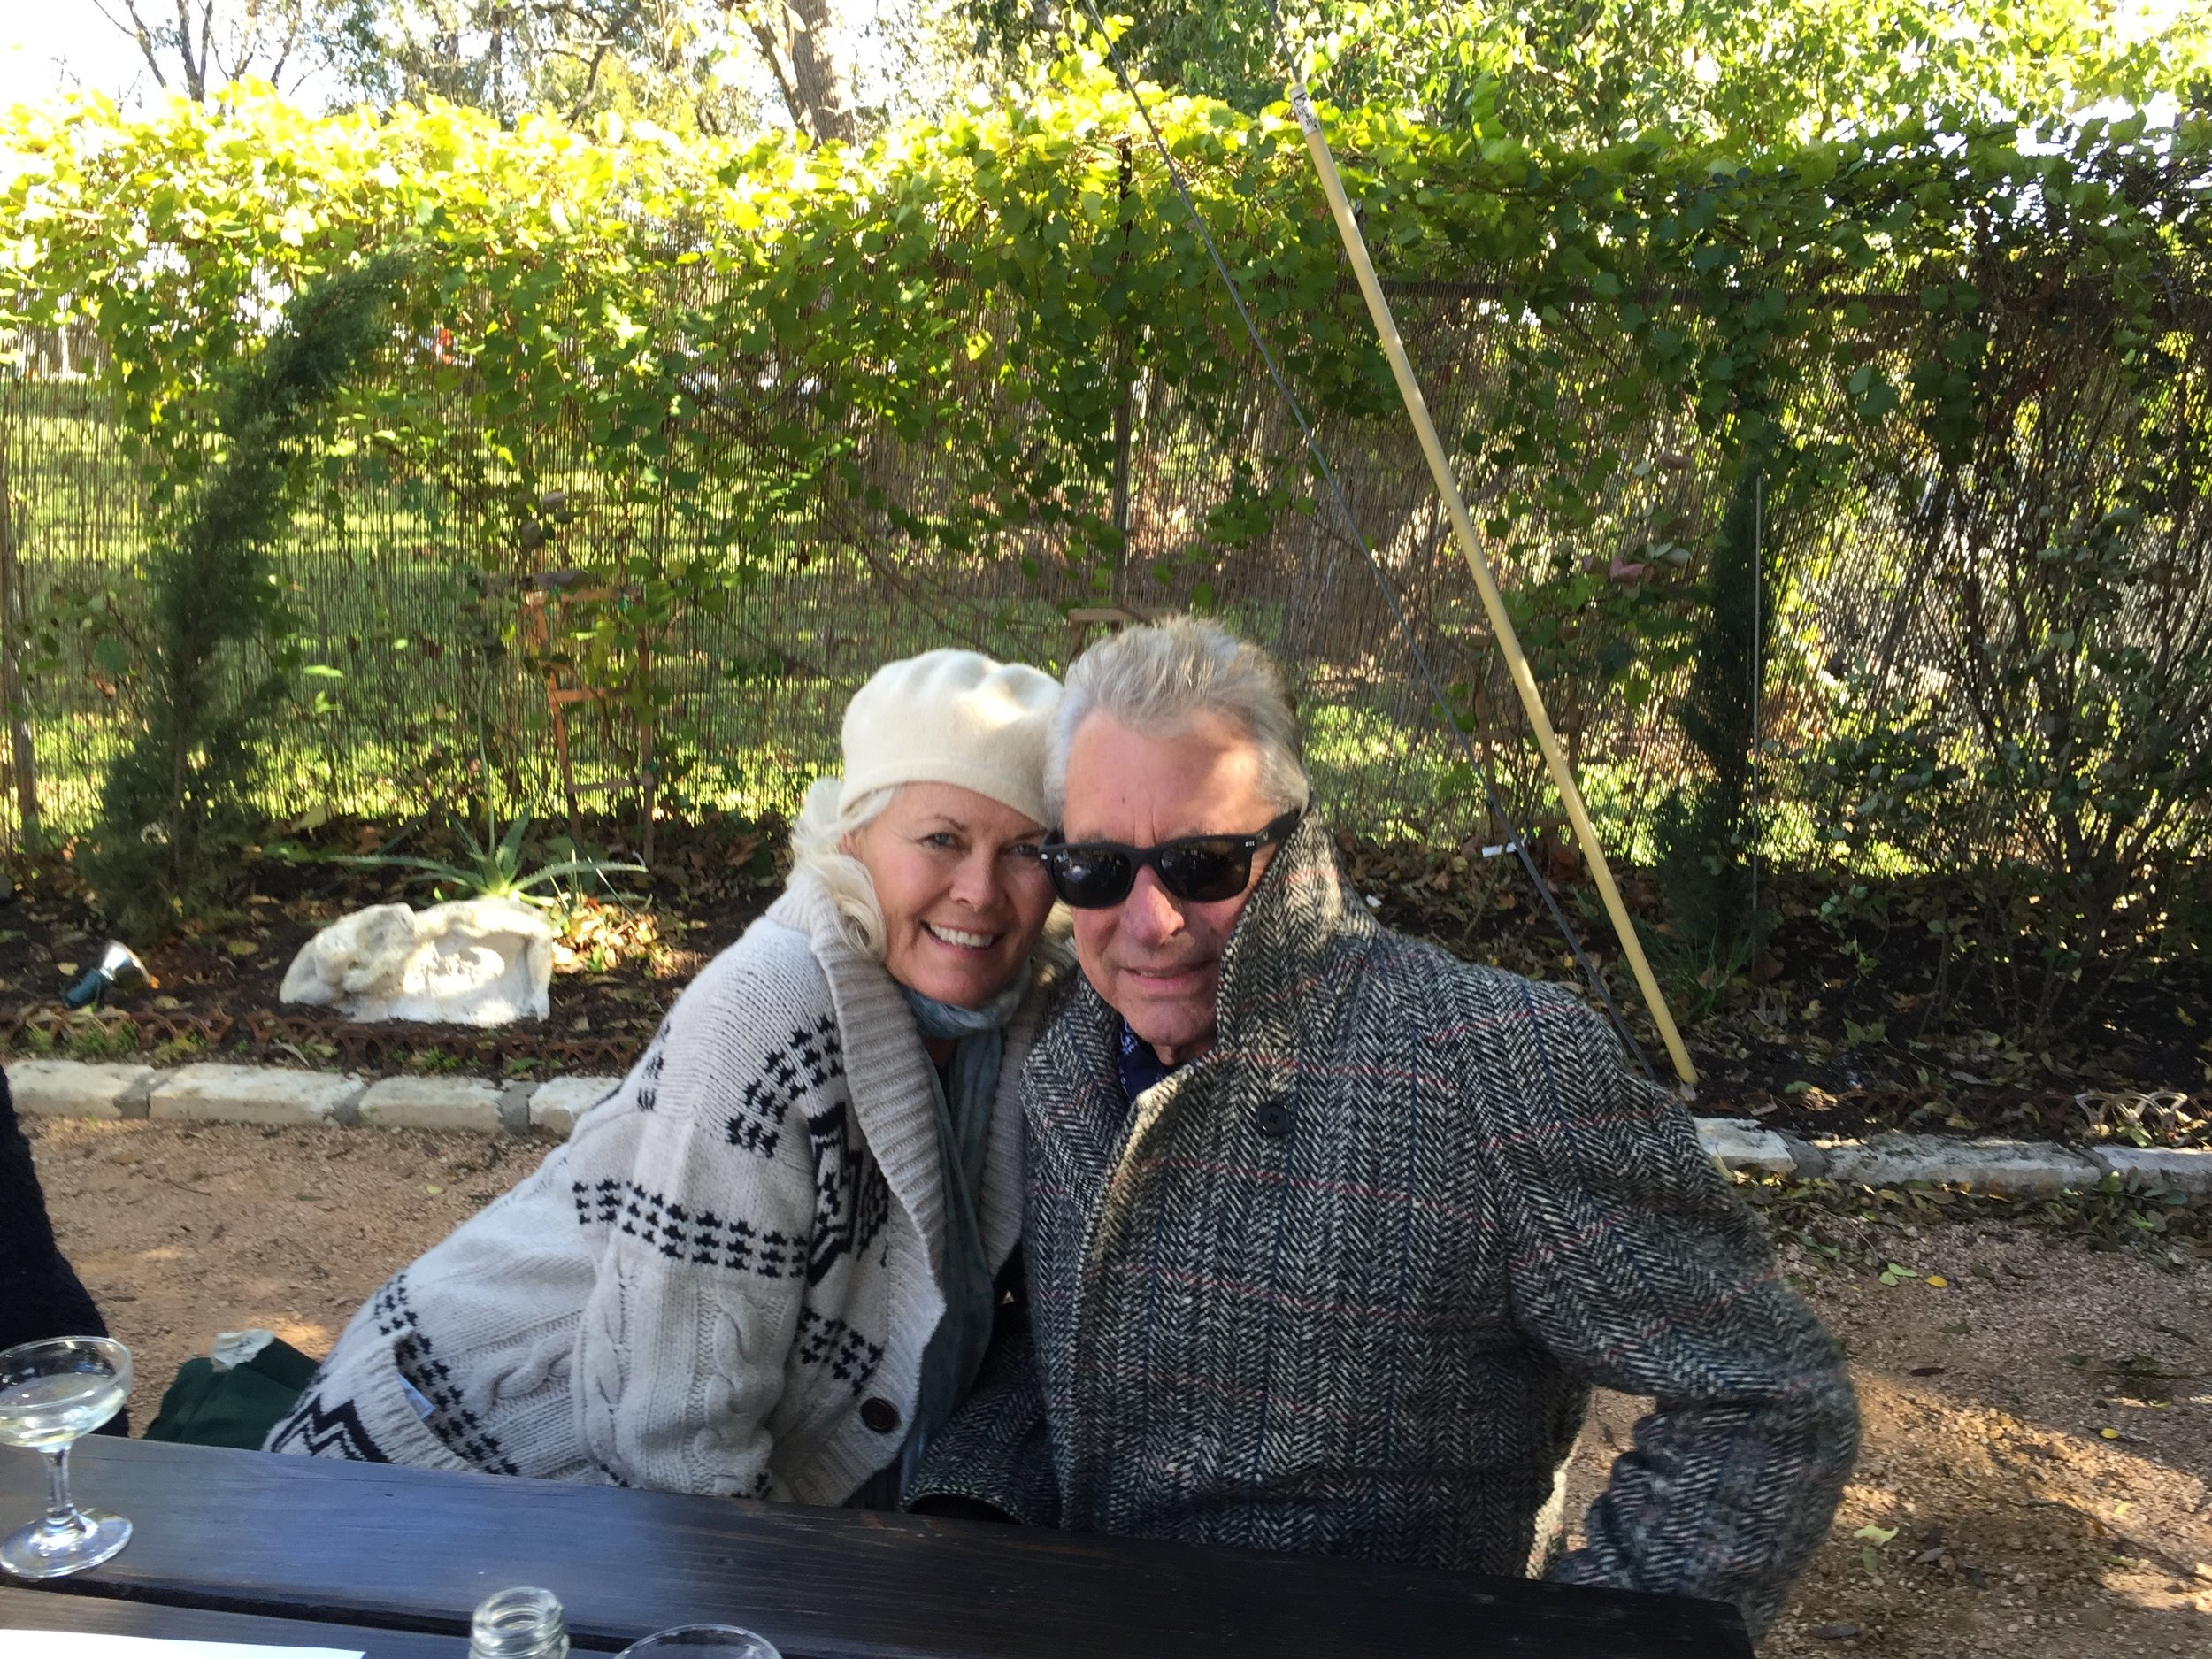 Sharon and Joe Ely in the garden at Justine's in Austin.